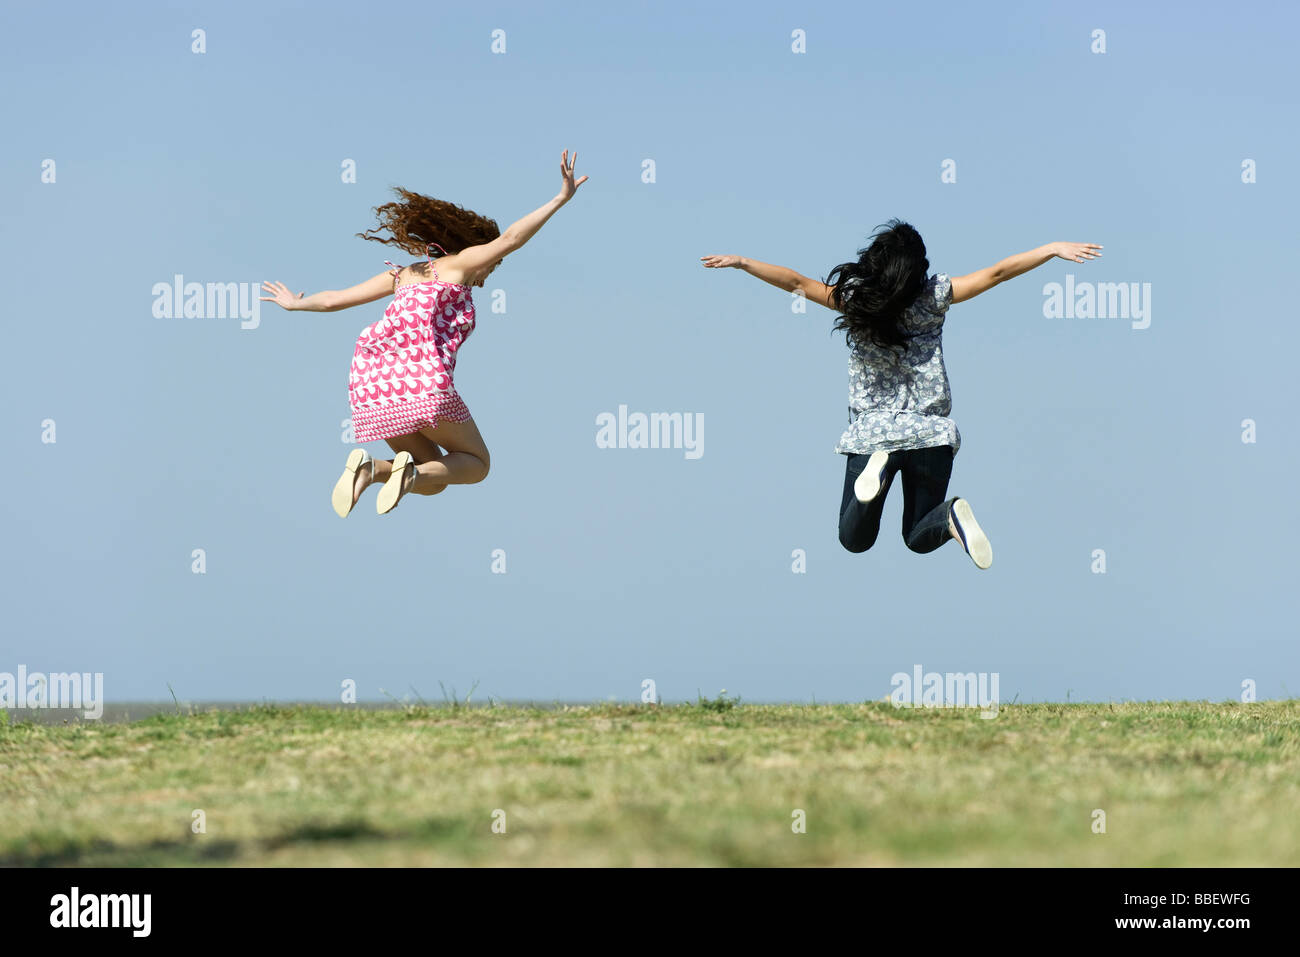 Two young women jumping in midair outdoors, rear view - Stock Image